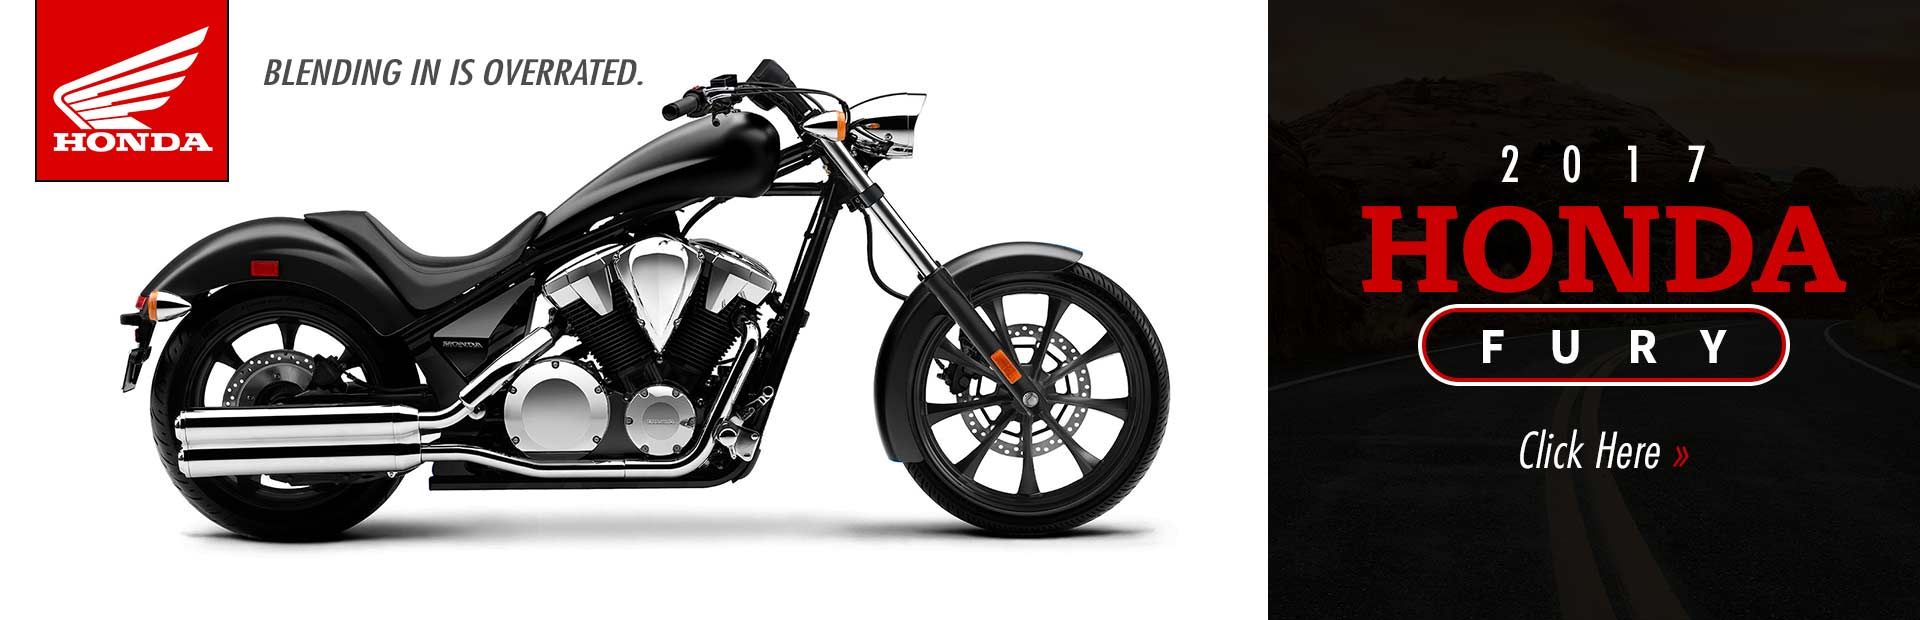 2017 Honda Fury: Click here to view the model.